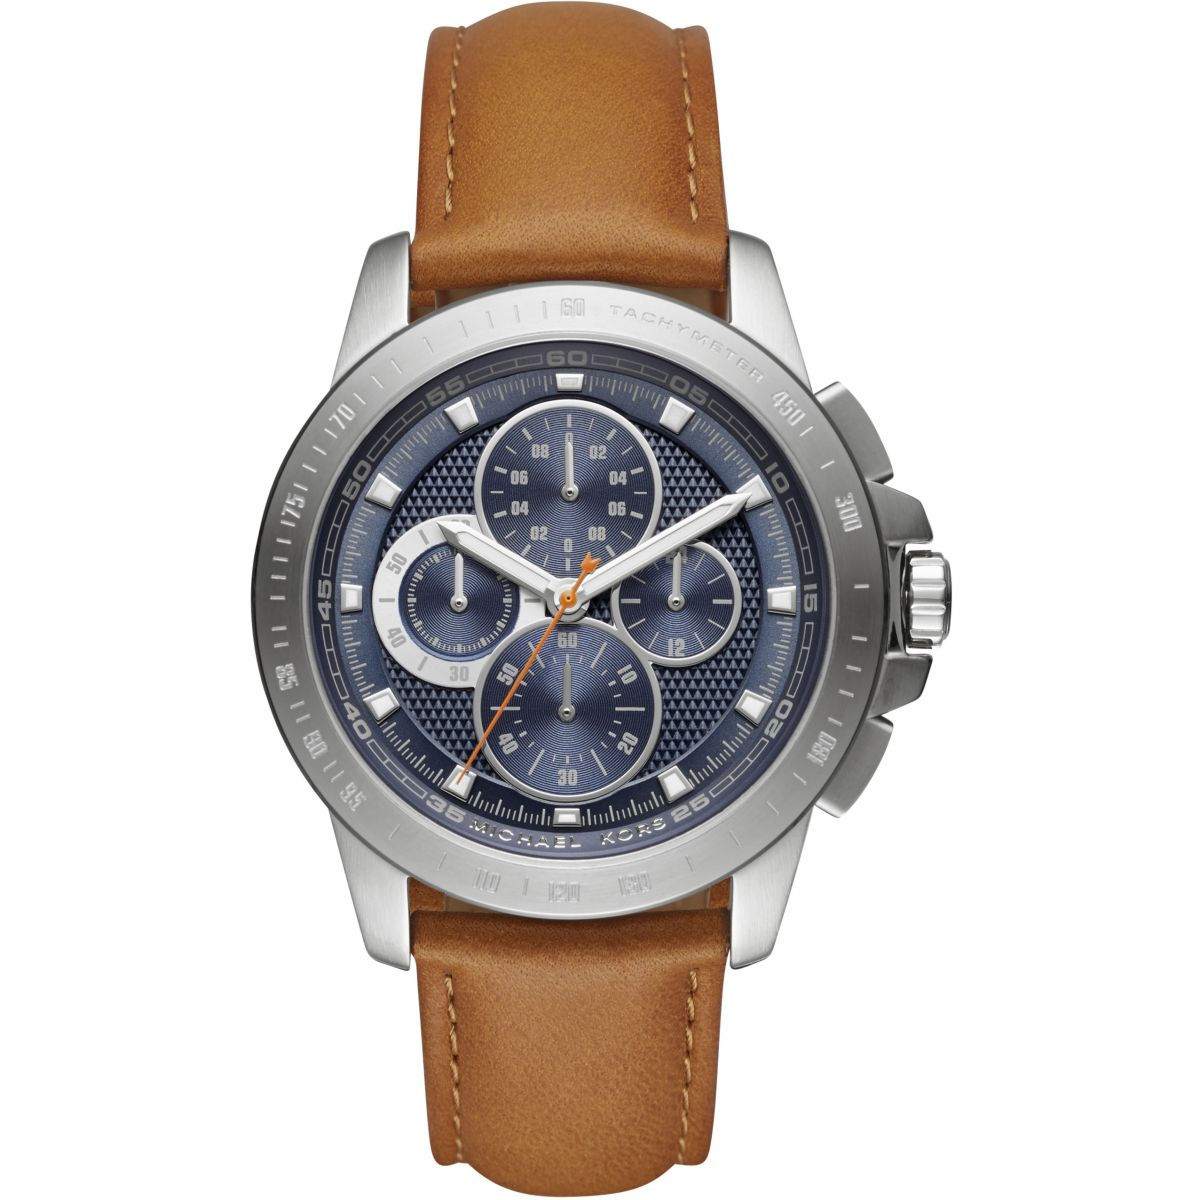 Gents Michael Kors Ryker Chronograph Watch MK WatchShopcom - Invoice sample word michael kors outlet online store